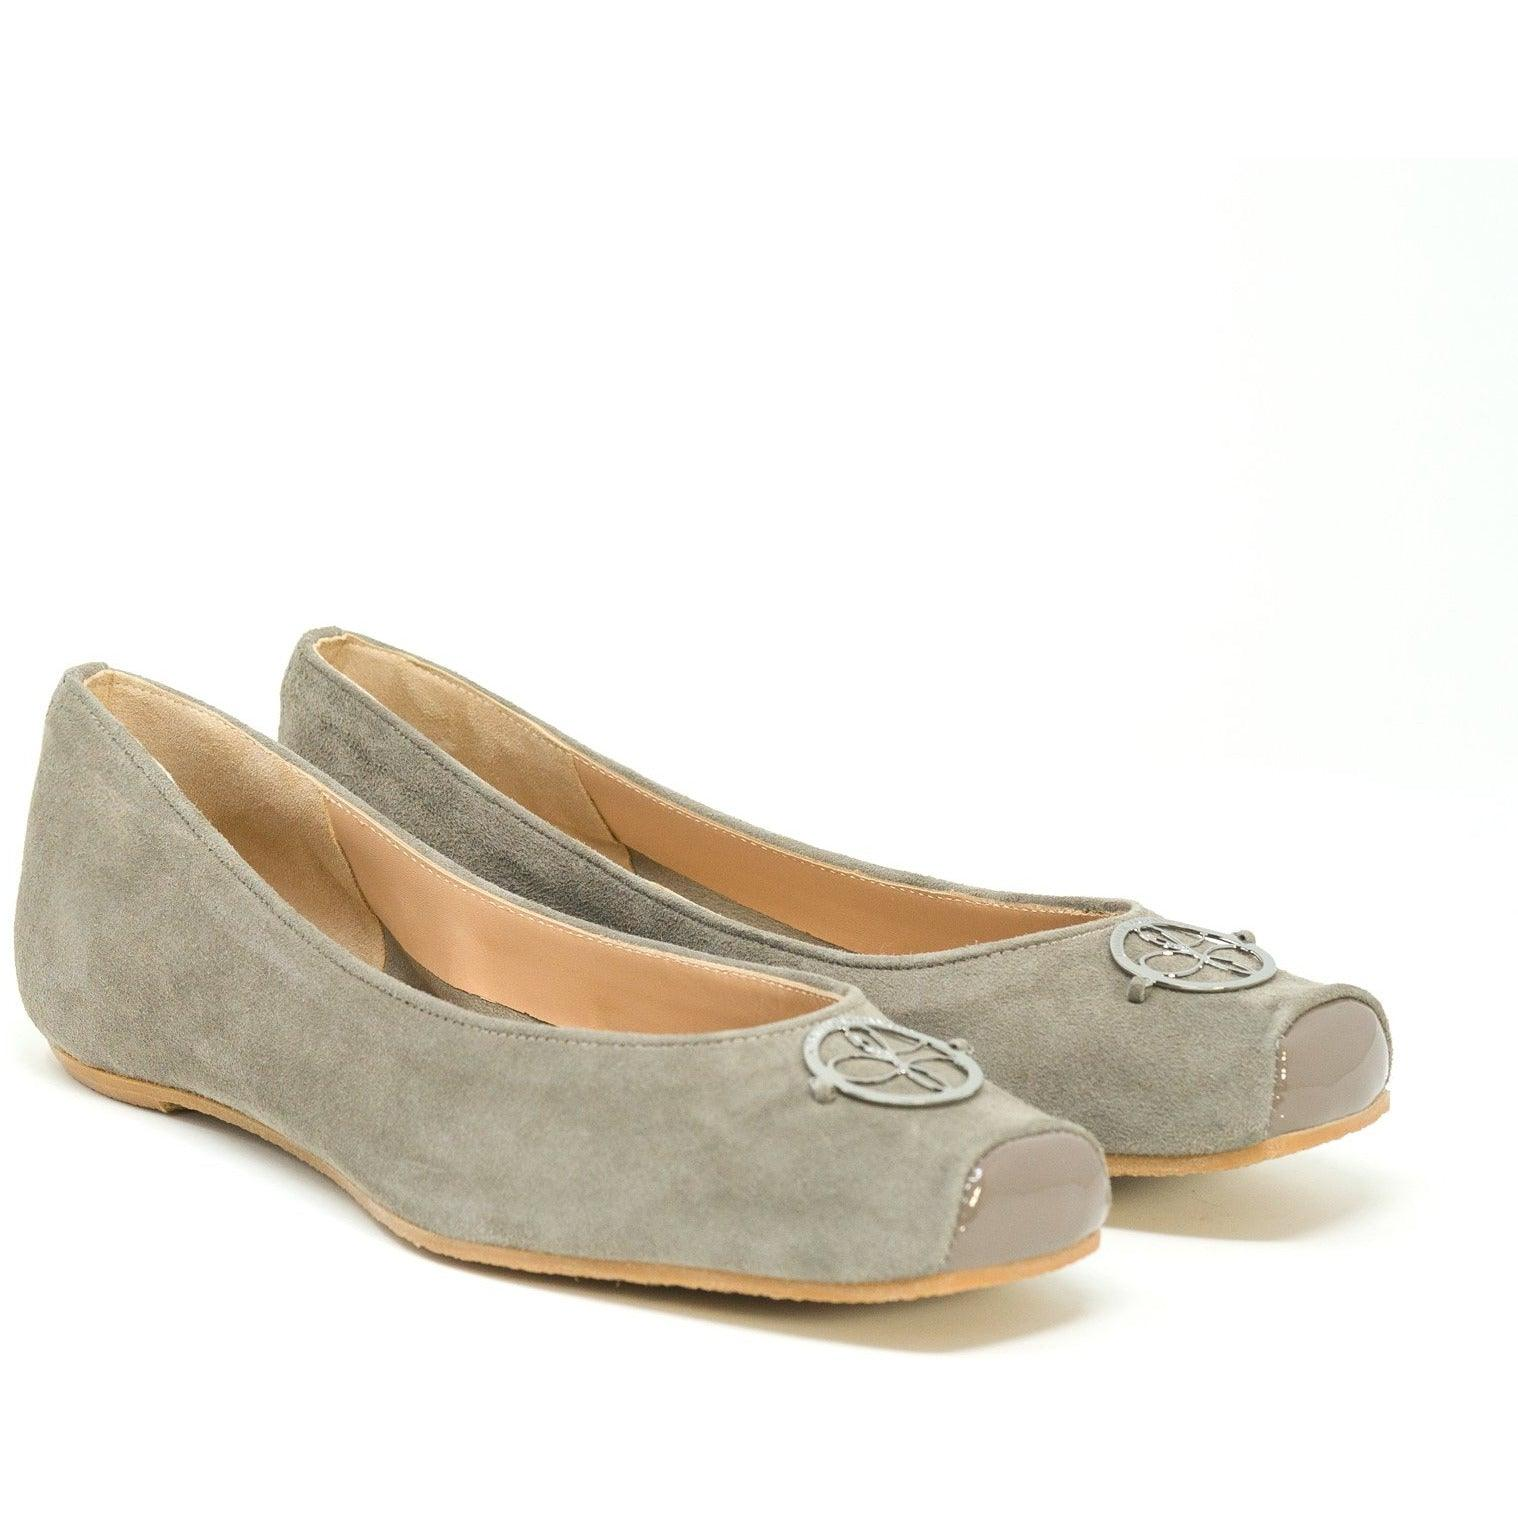 Women Ballerina Shoes with hidden heel in Taupe